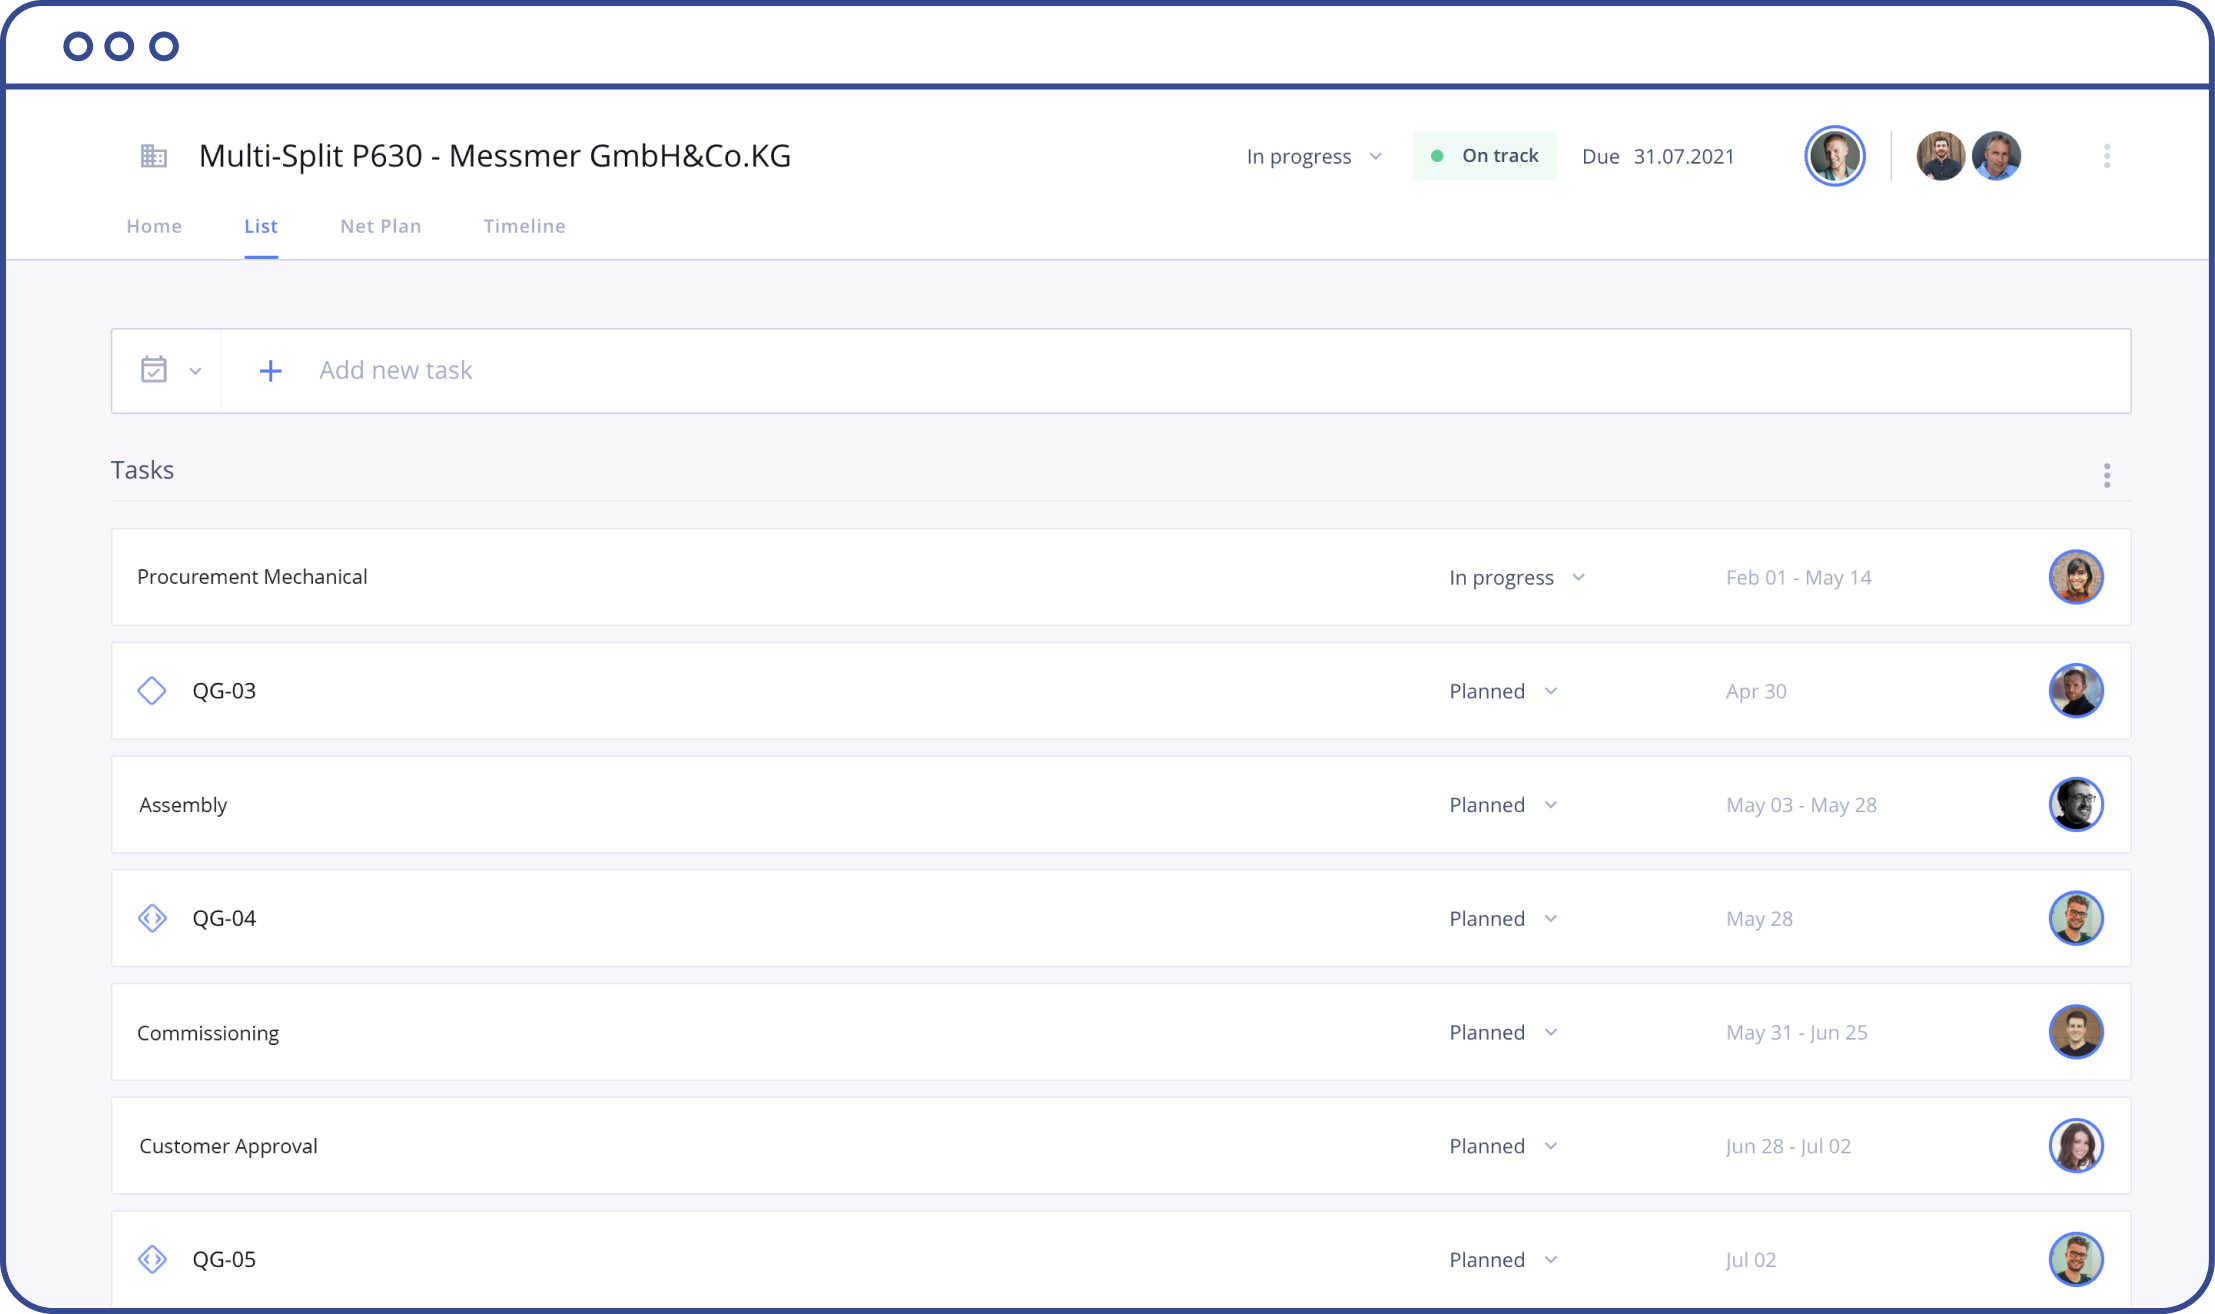 A screenshot of the Allex interface showing the task list view.